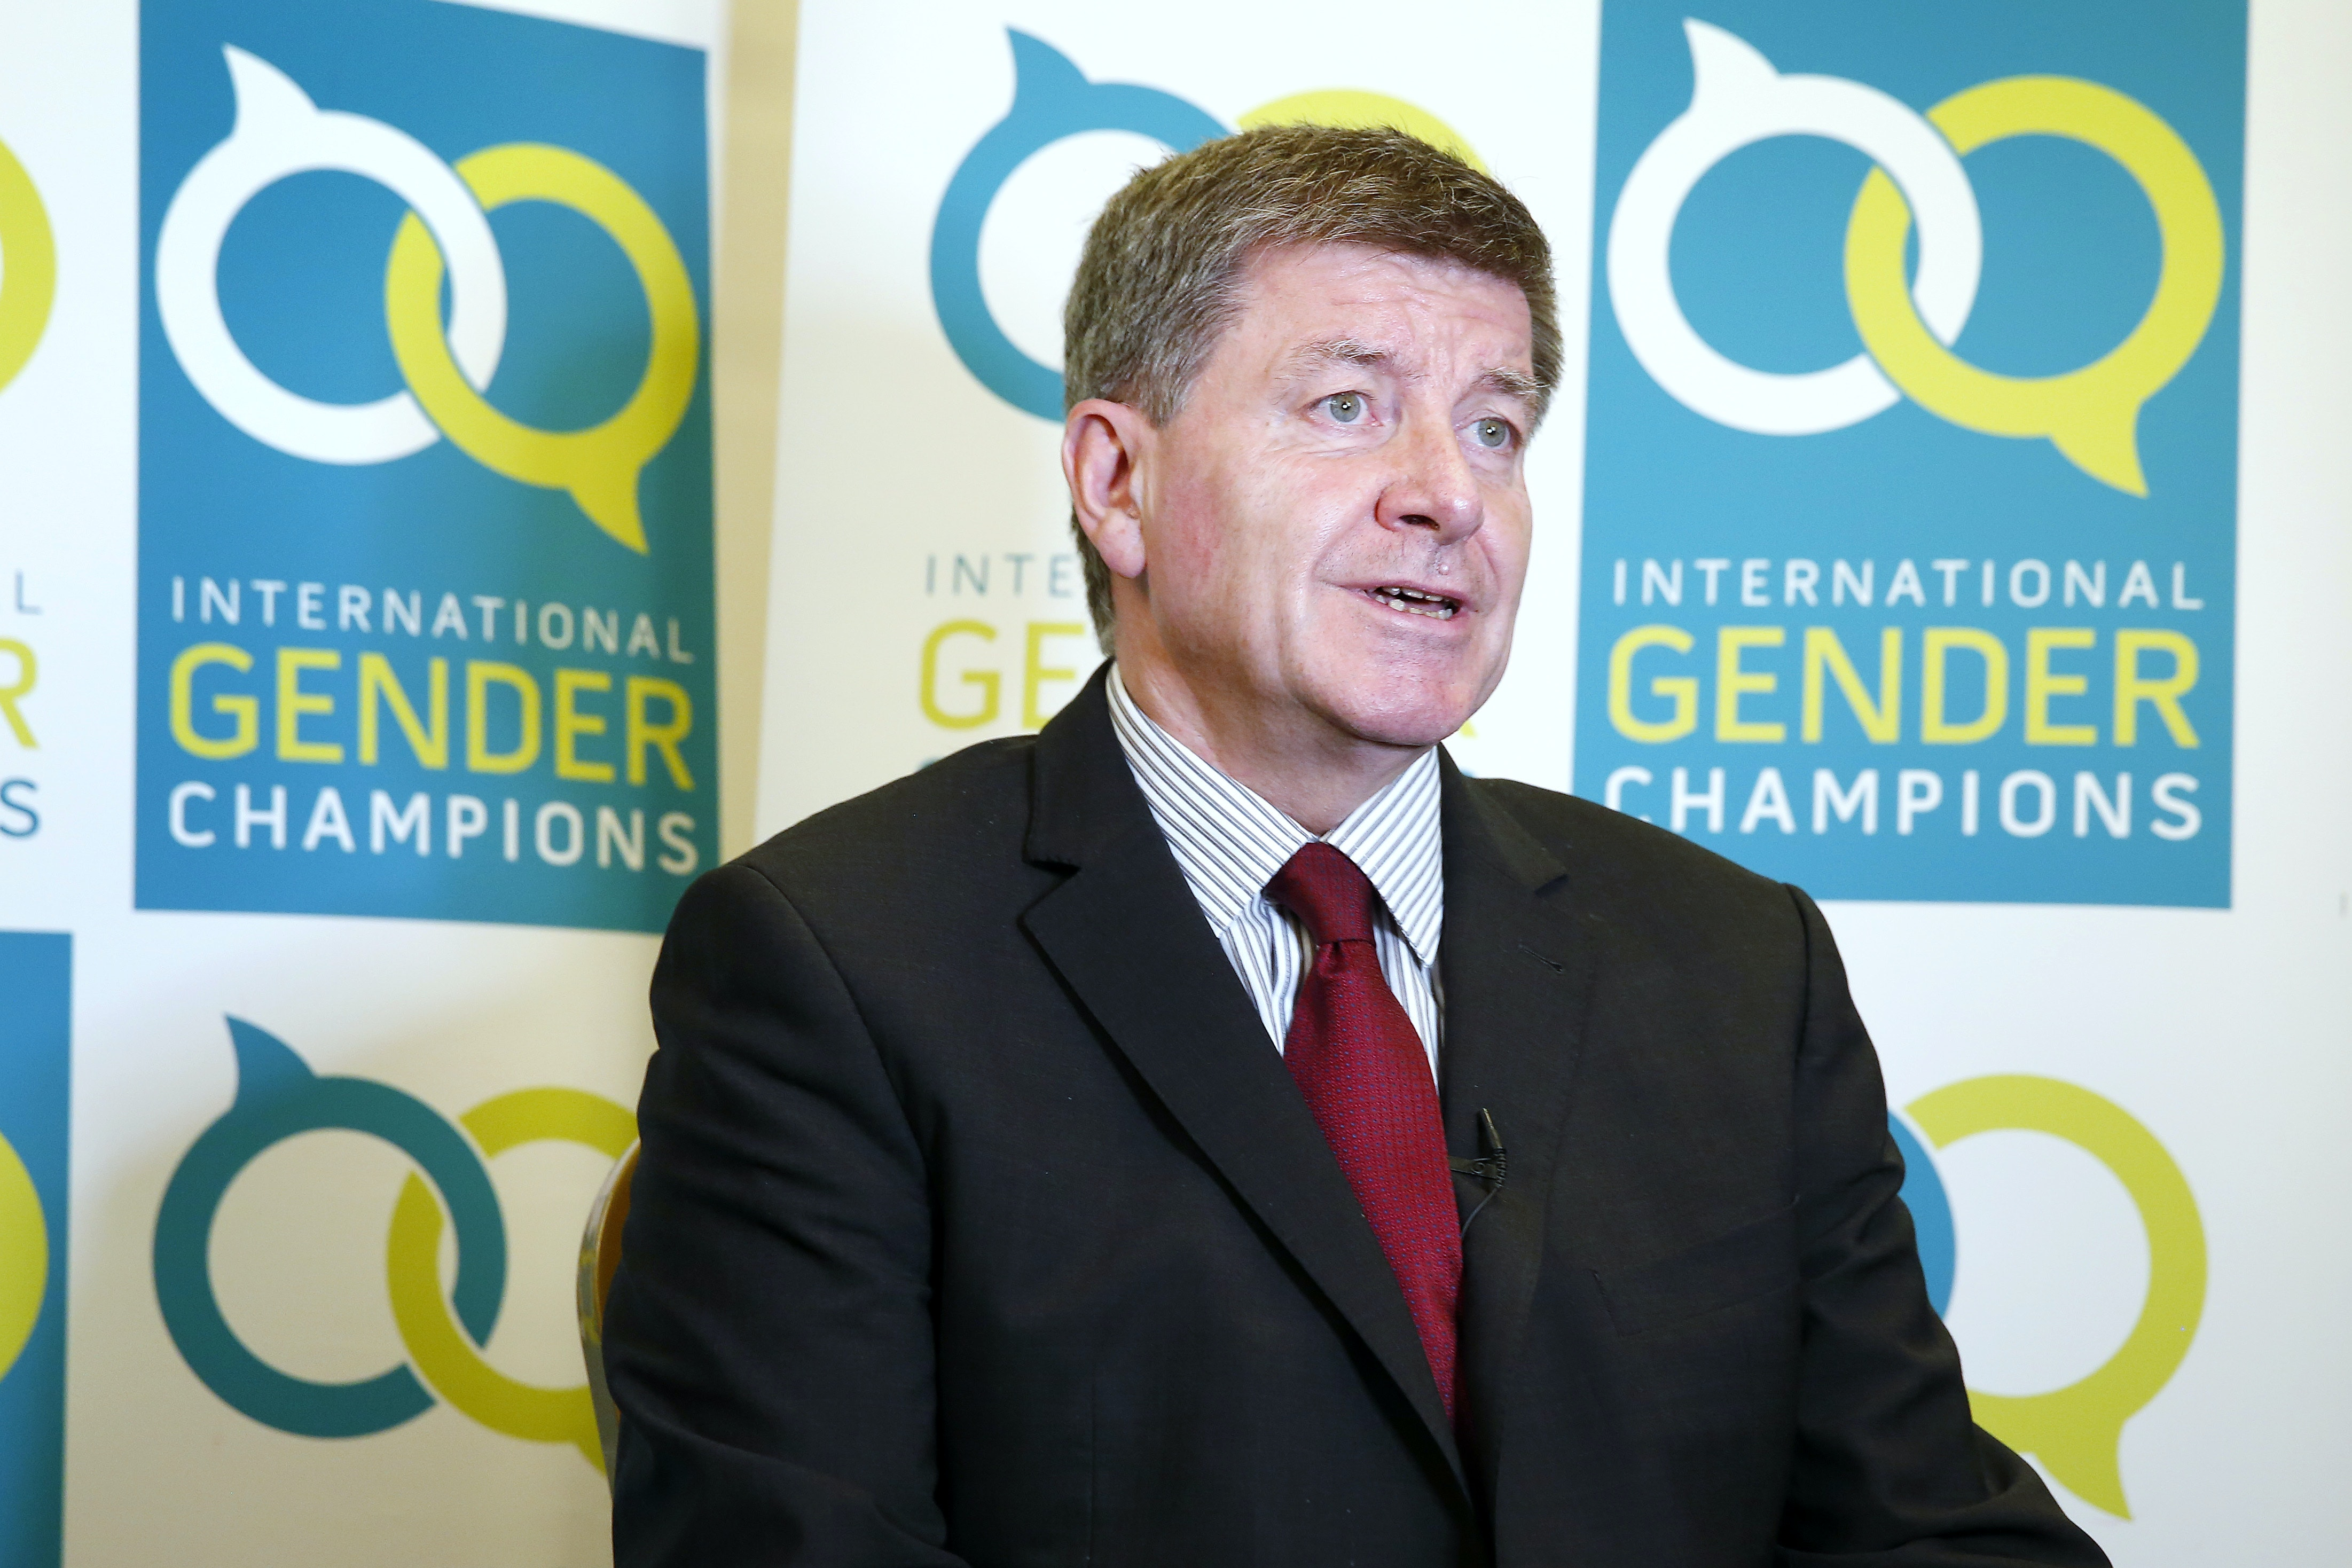 Gender Champion Guy Ryder supports Harass Free Assemblies at the ILC